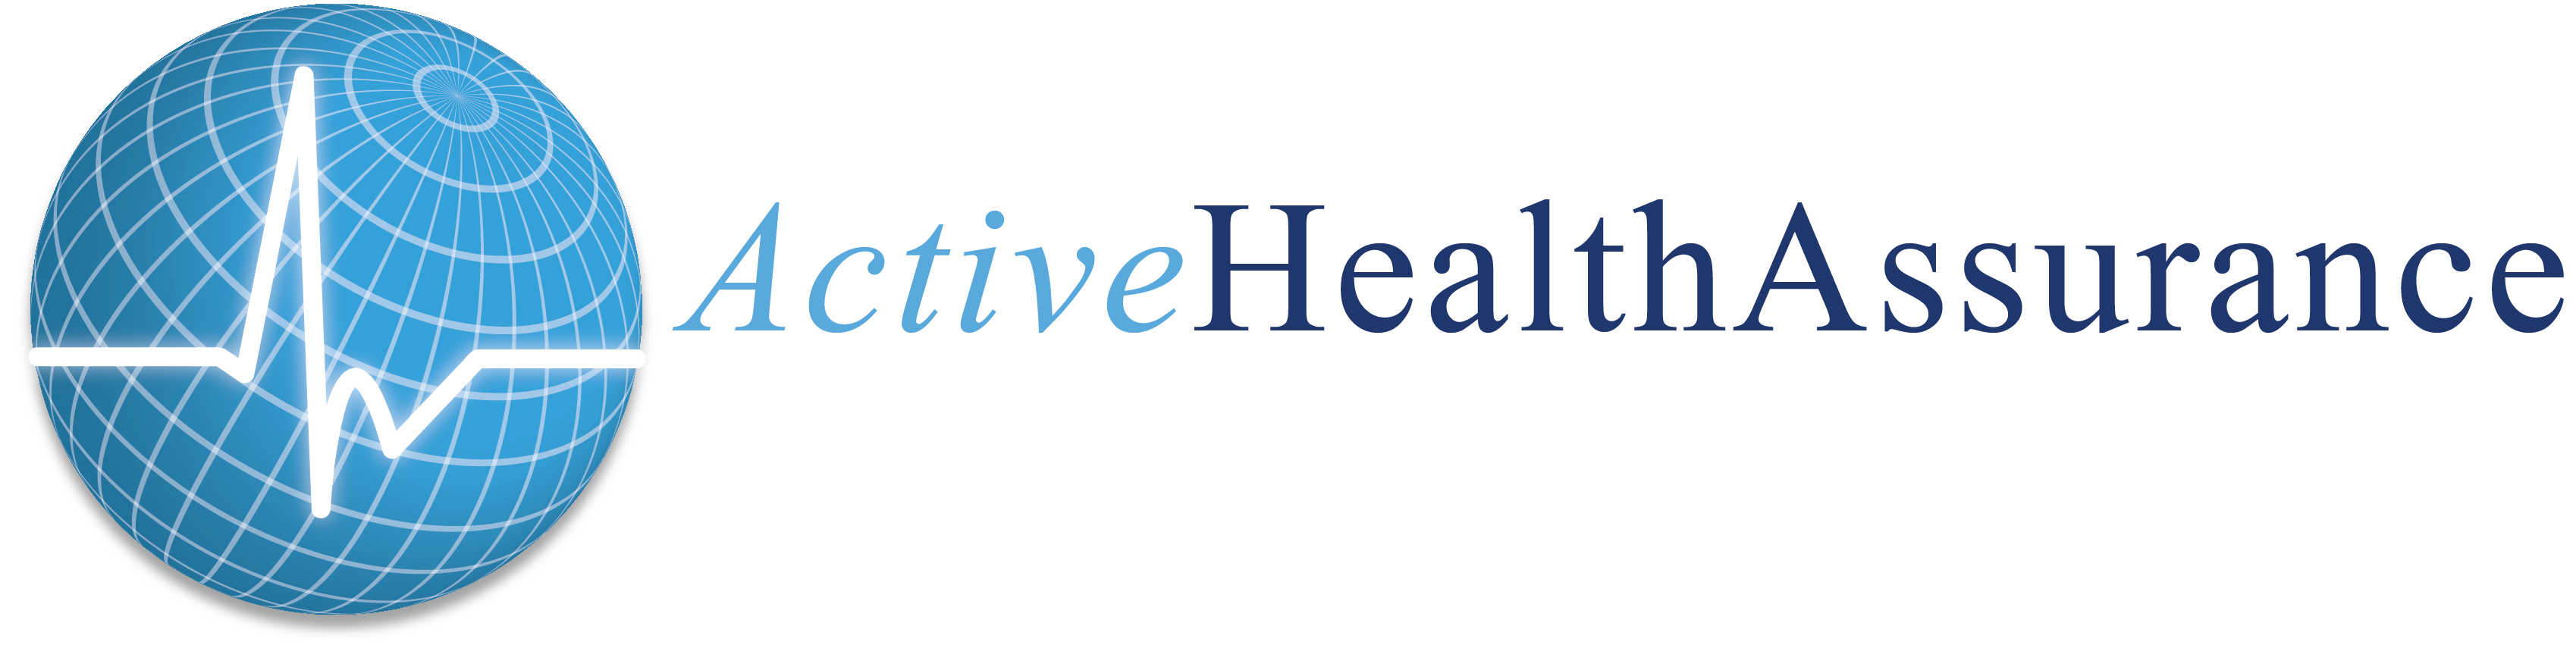 Active Health Assurance